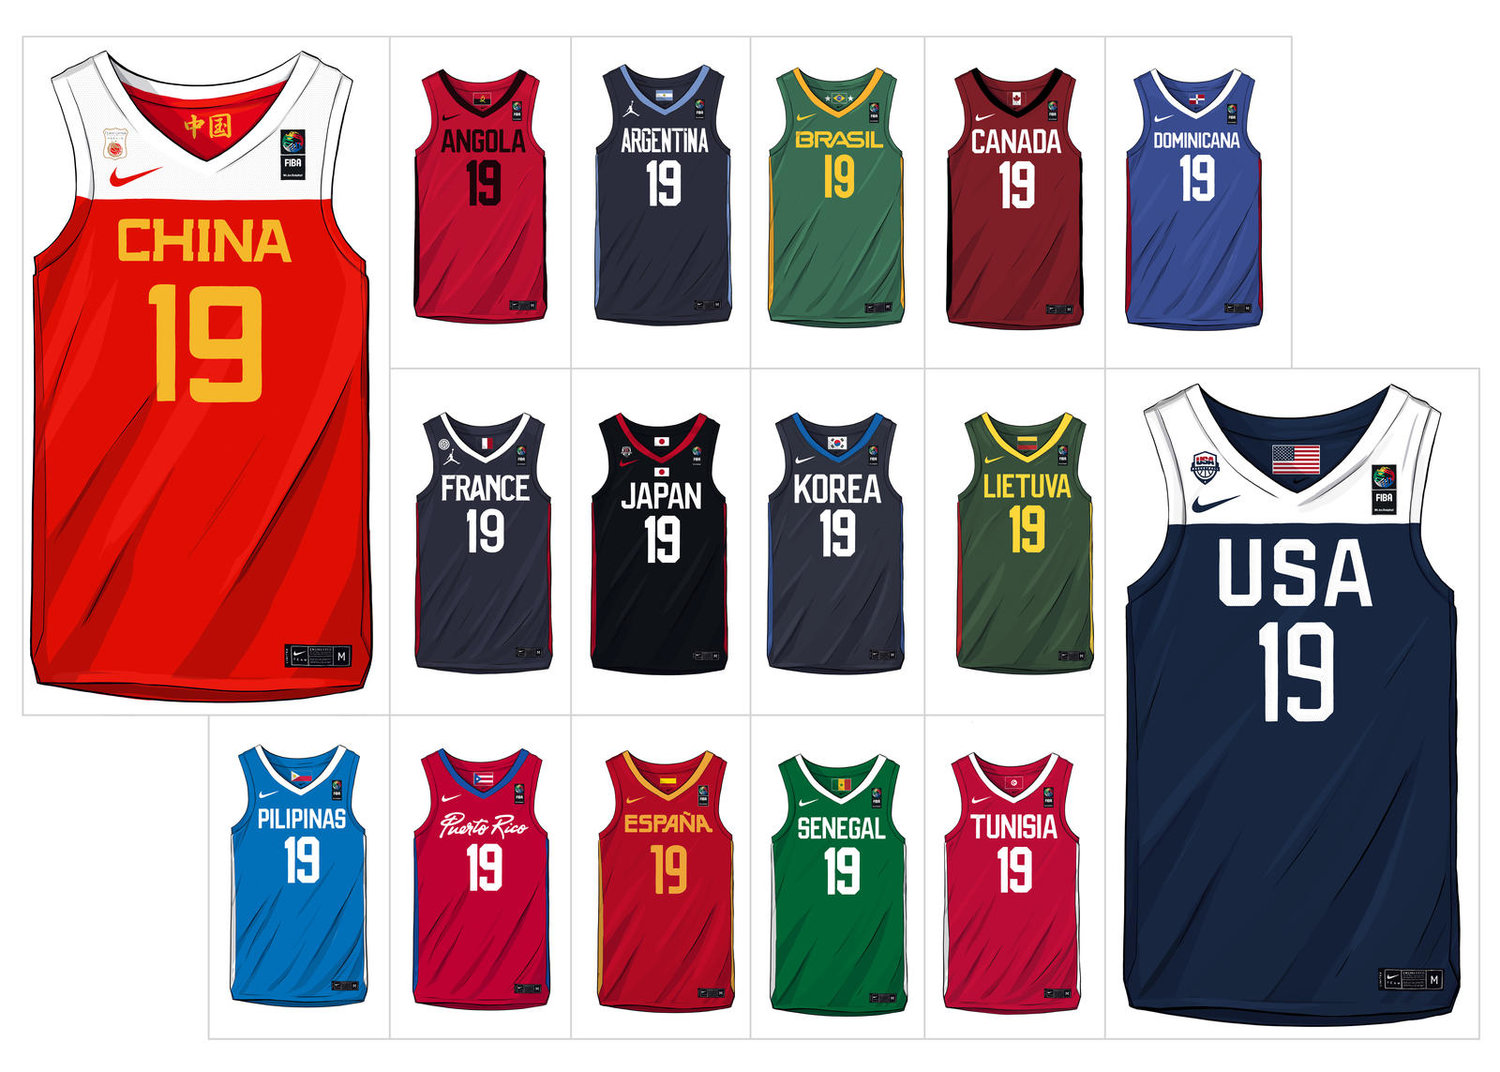 half off 4c4e1 41c1d Here are all the Nike and Jordan Brand Basketball Federation ...